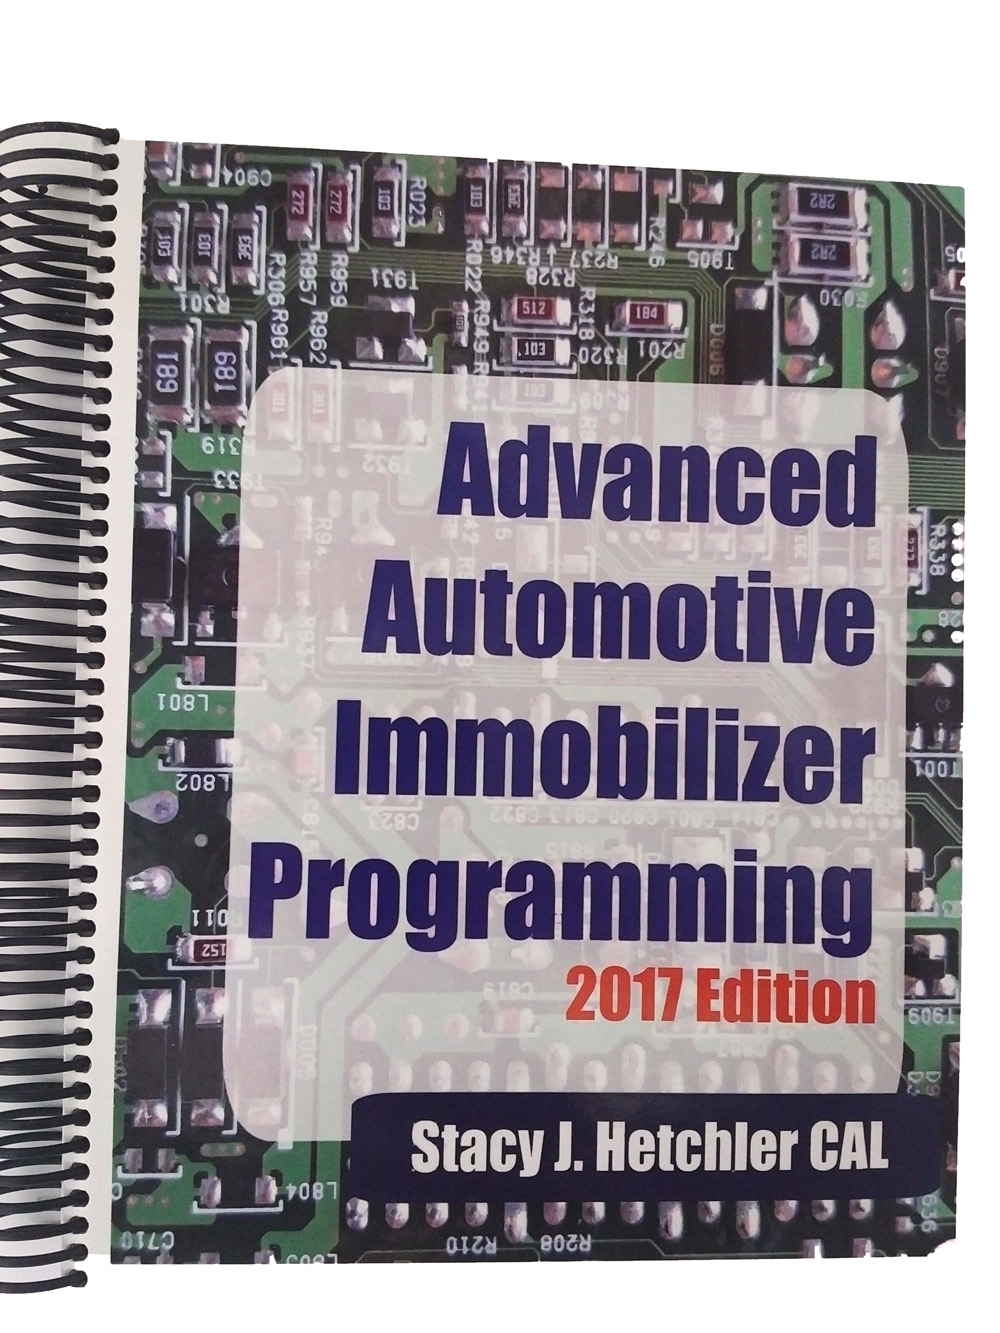 EEPROM BOOK BY STACY J  HETCHLER VOL  1 (2017 EDITION) HARD COVER